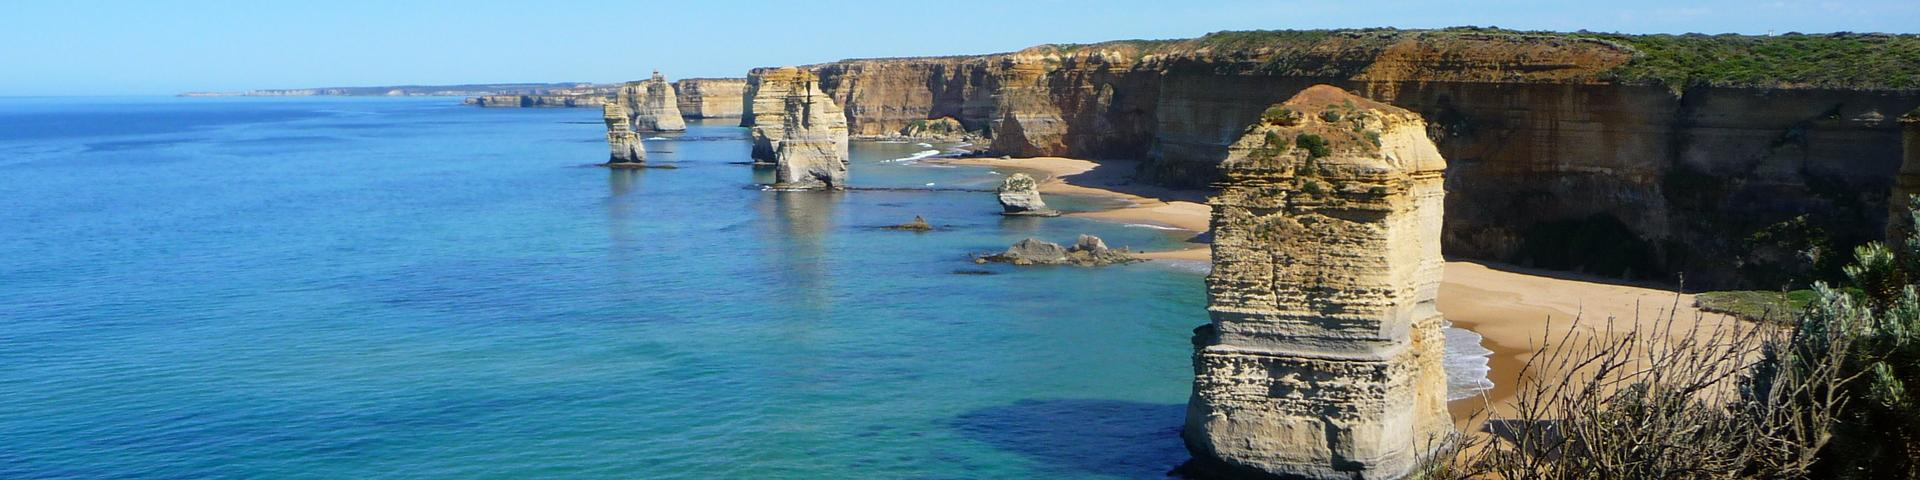 Geological formation in the south of Australia